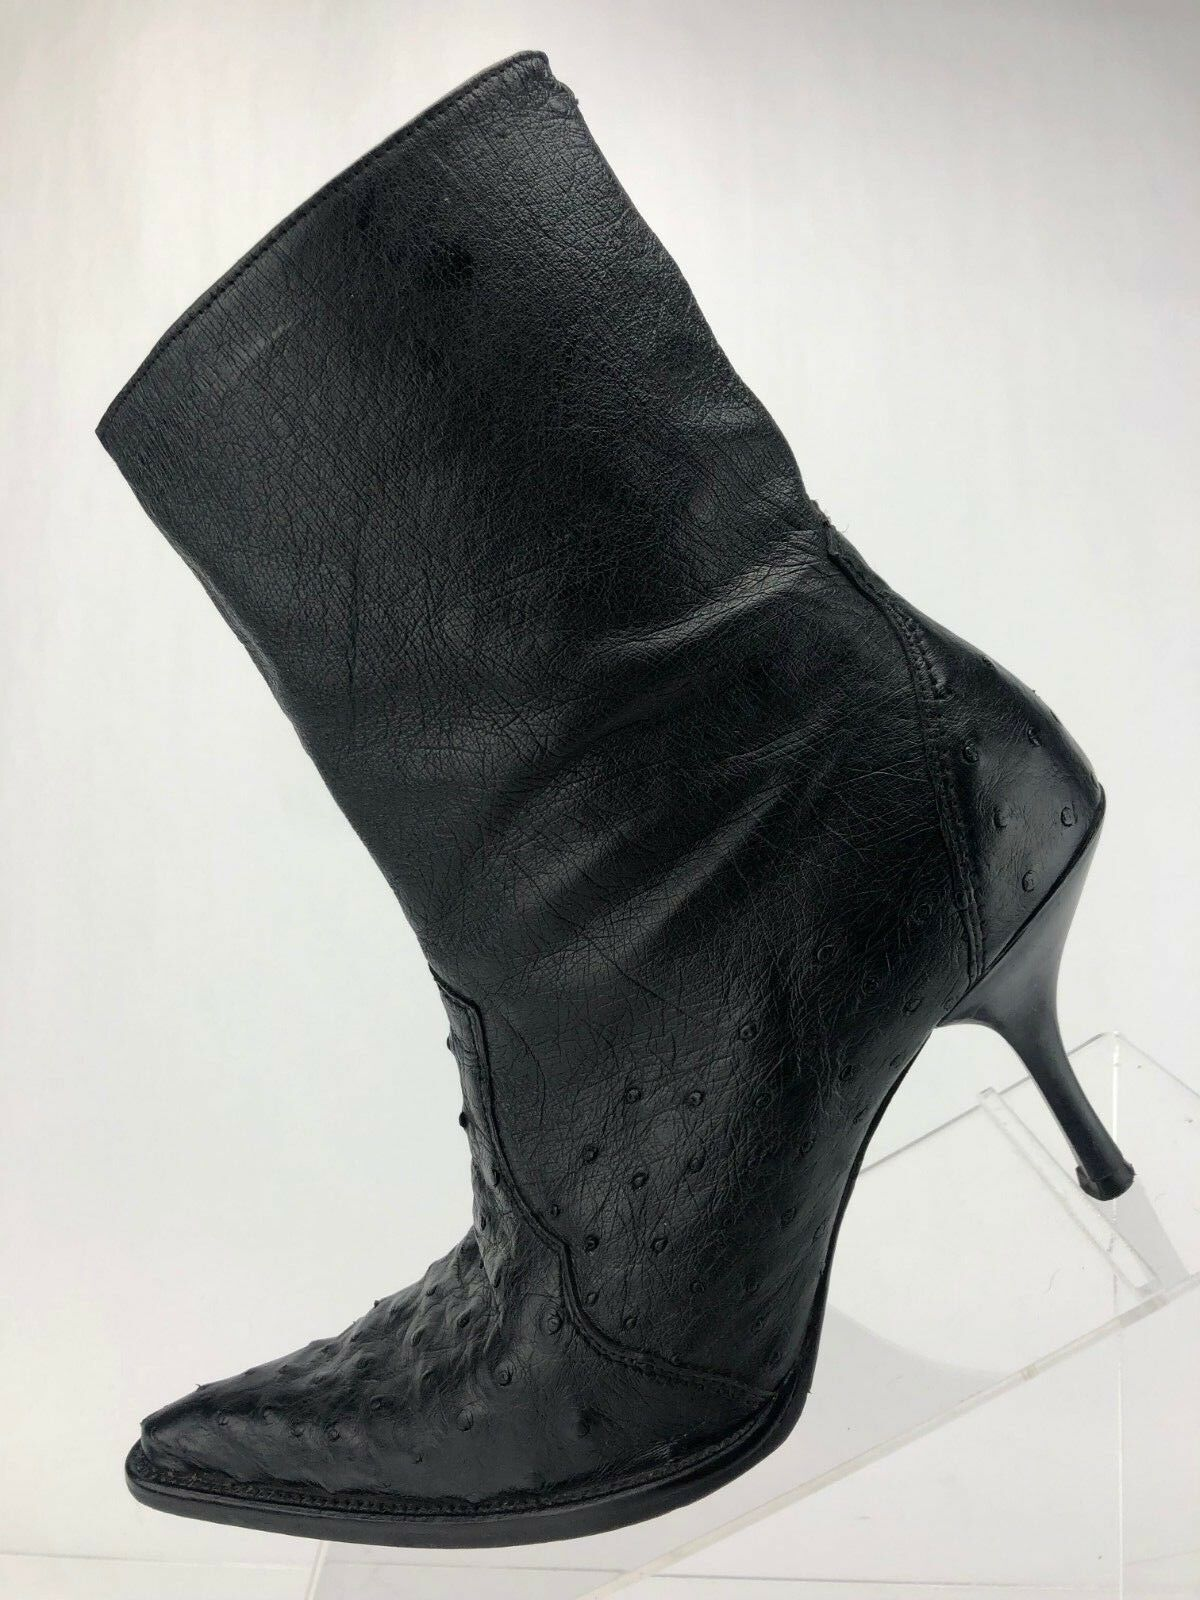 Frida Cuadra Boots Ostrich Print Black Leather Side Zip Ankle High Womens Size 9